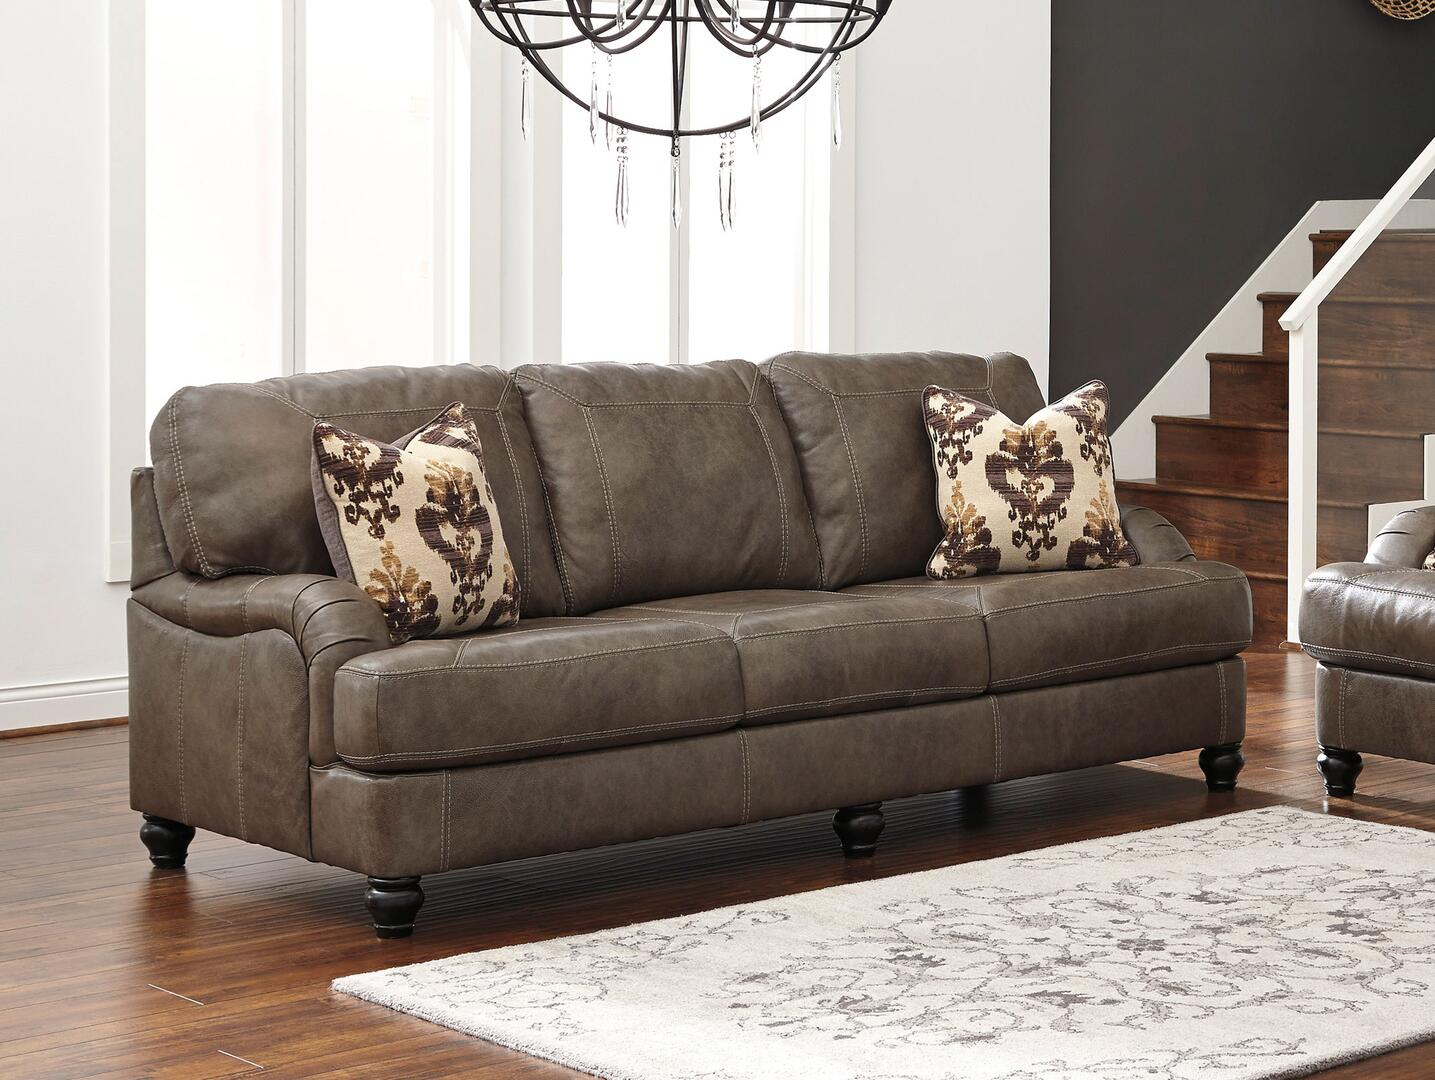 Buzula Furniture Amarillo Tx